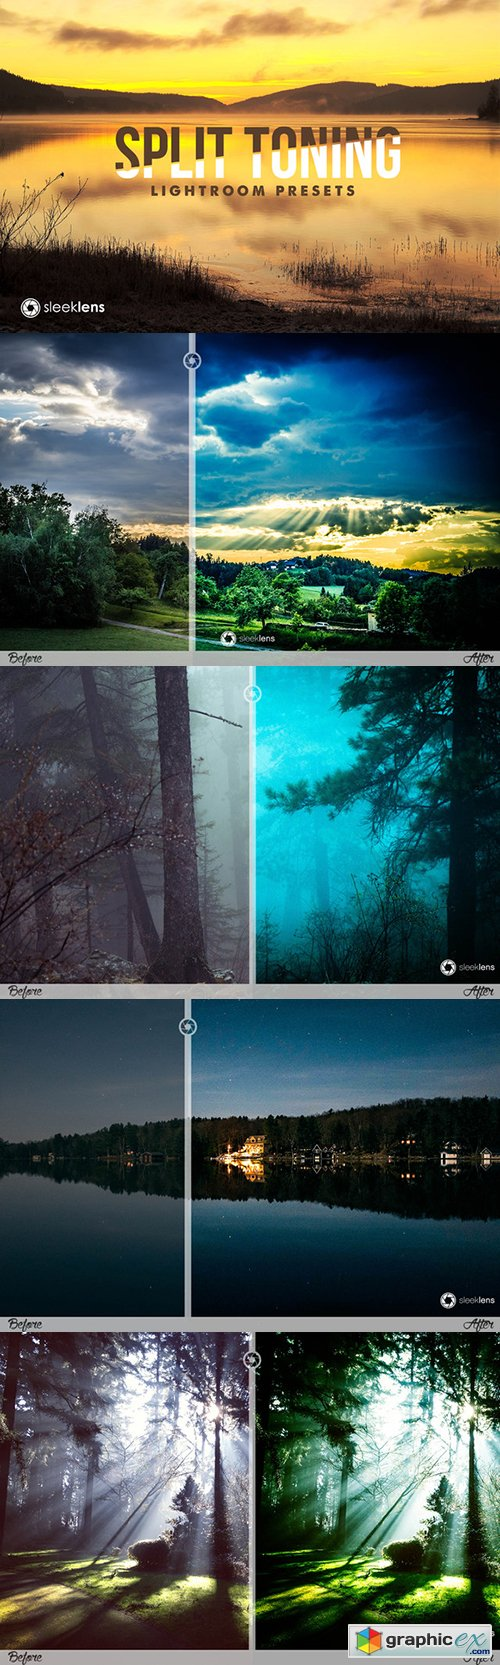 Split Toning leaks Lightroom Presets